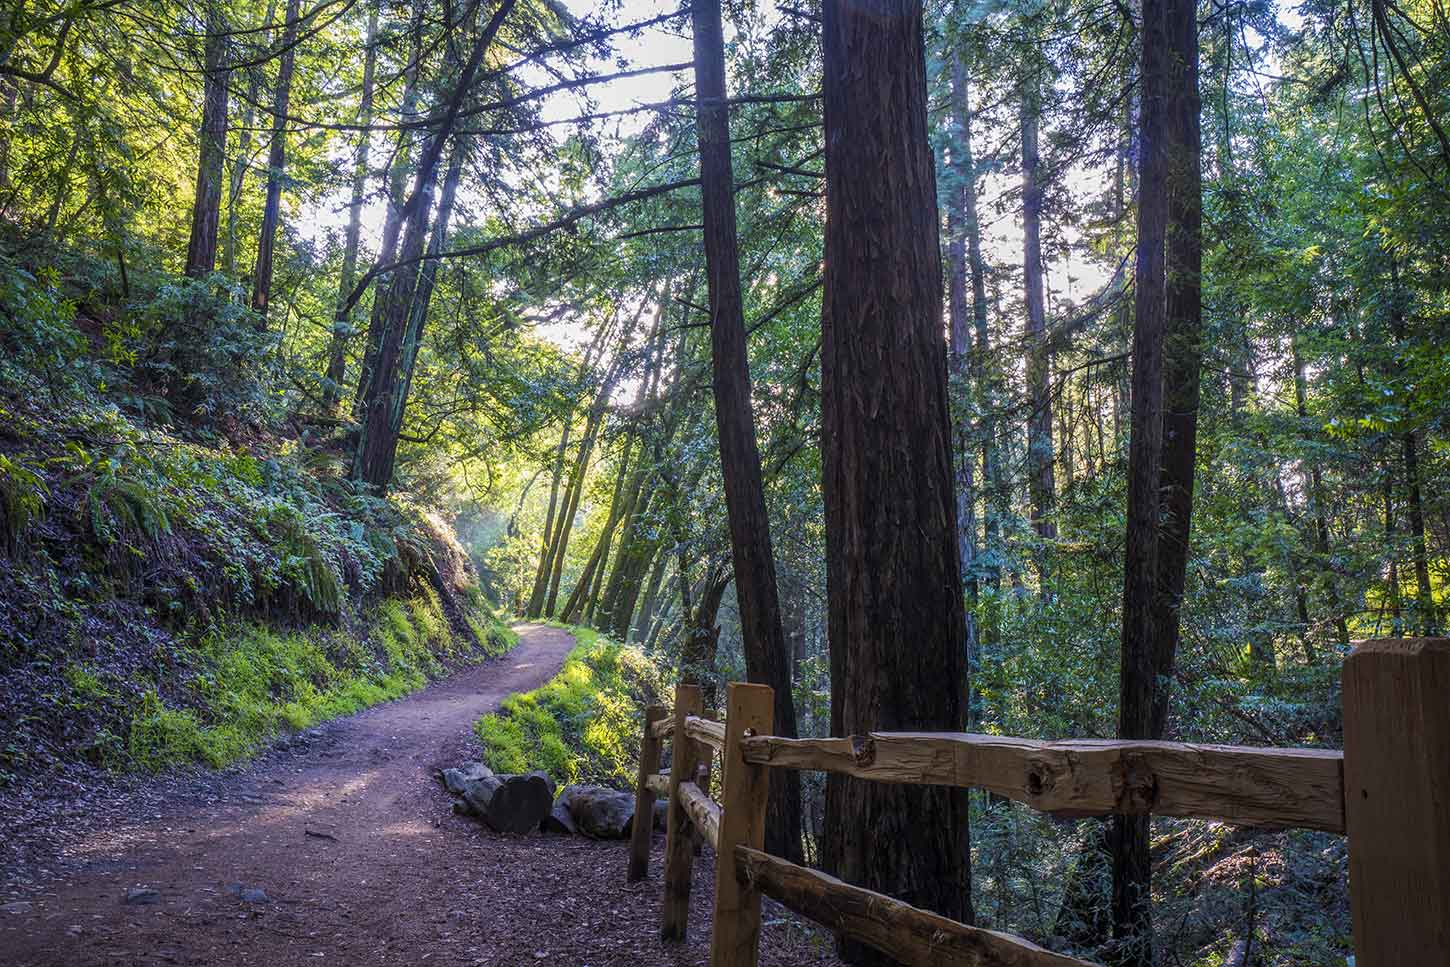 This Wide Level Trail Is The Most Por In Park There Are Patches Of Redwoods Canyons But Mostly Non Redwood Forest